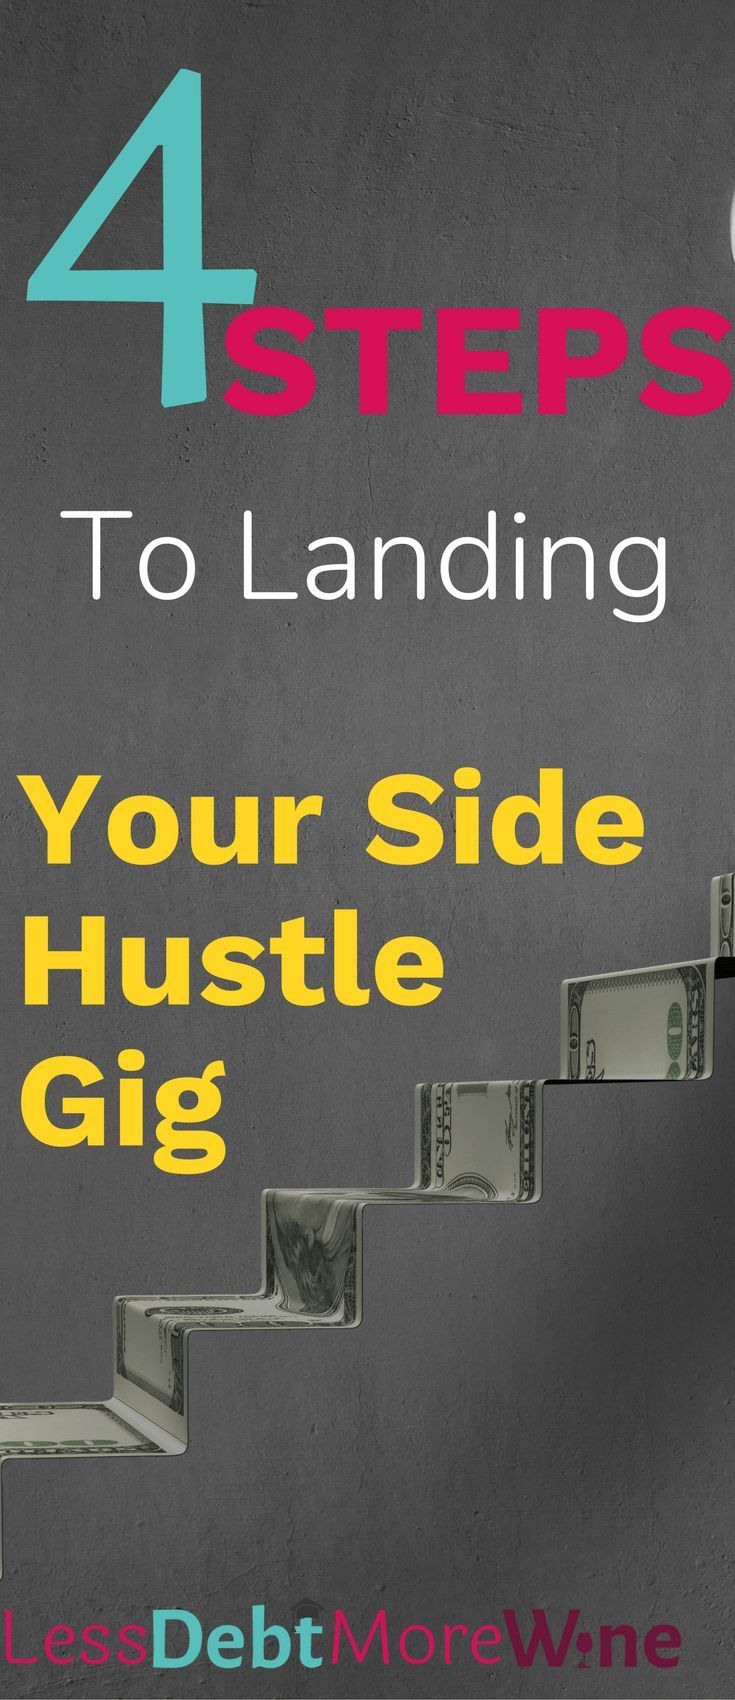 How to find and actually get side hustle jobs millennial